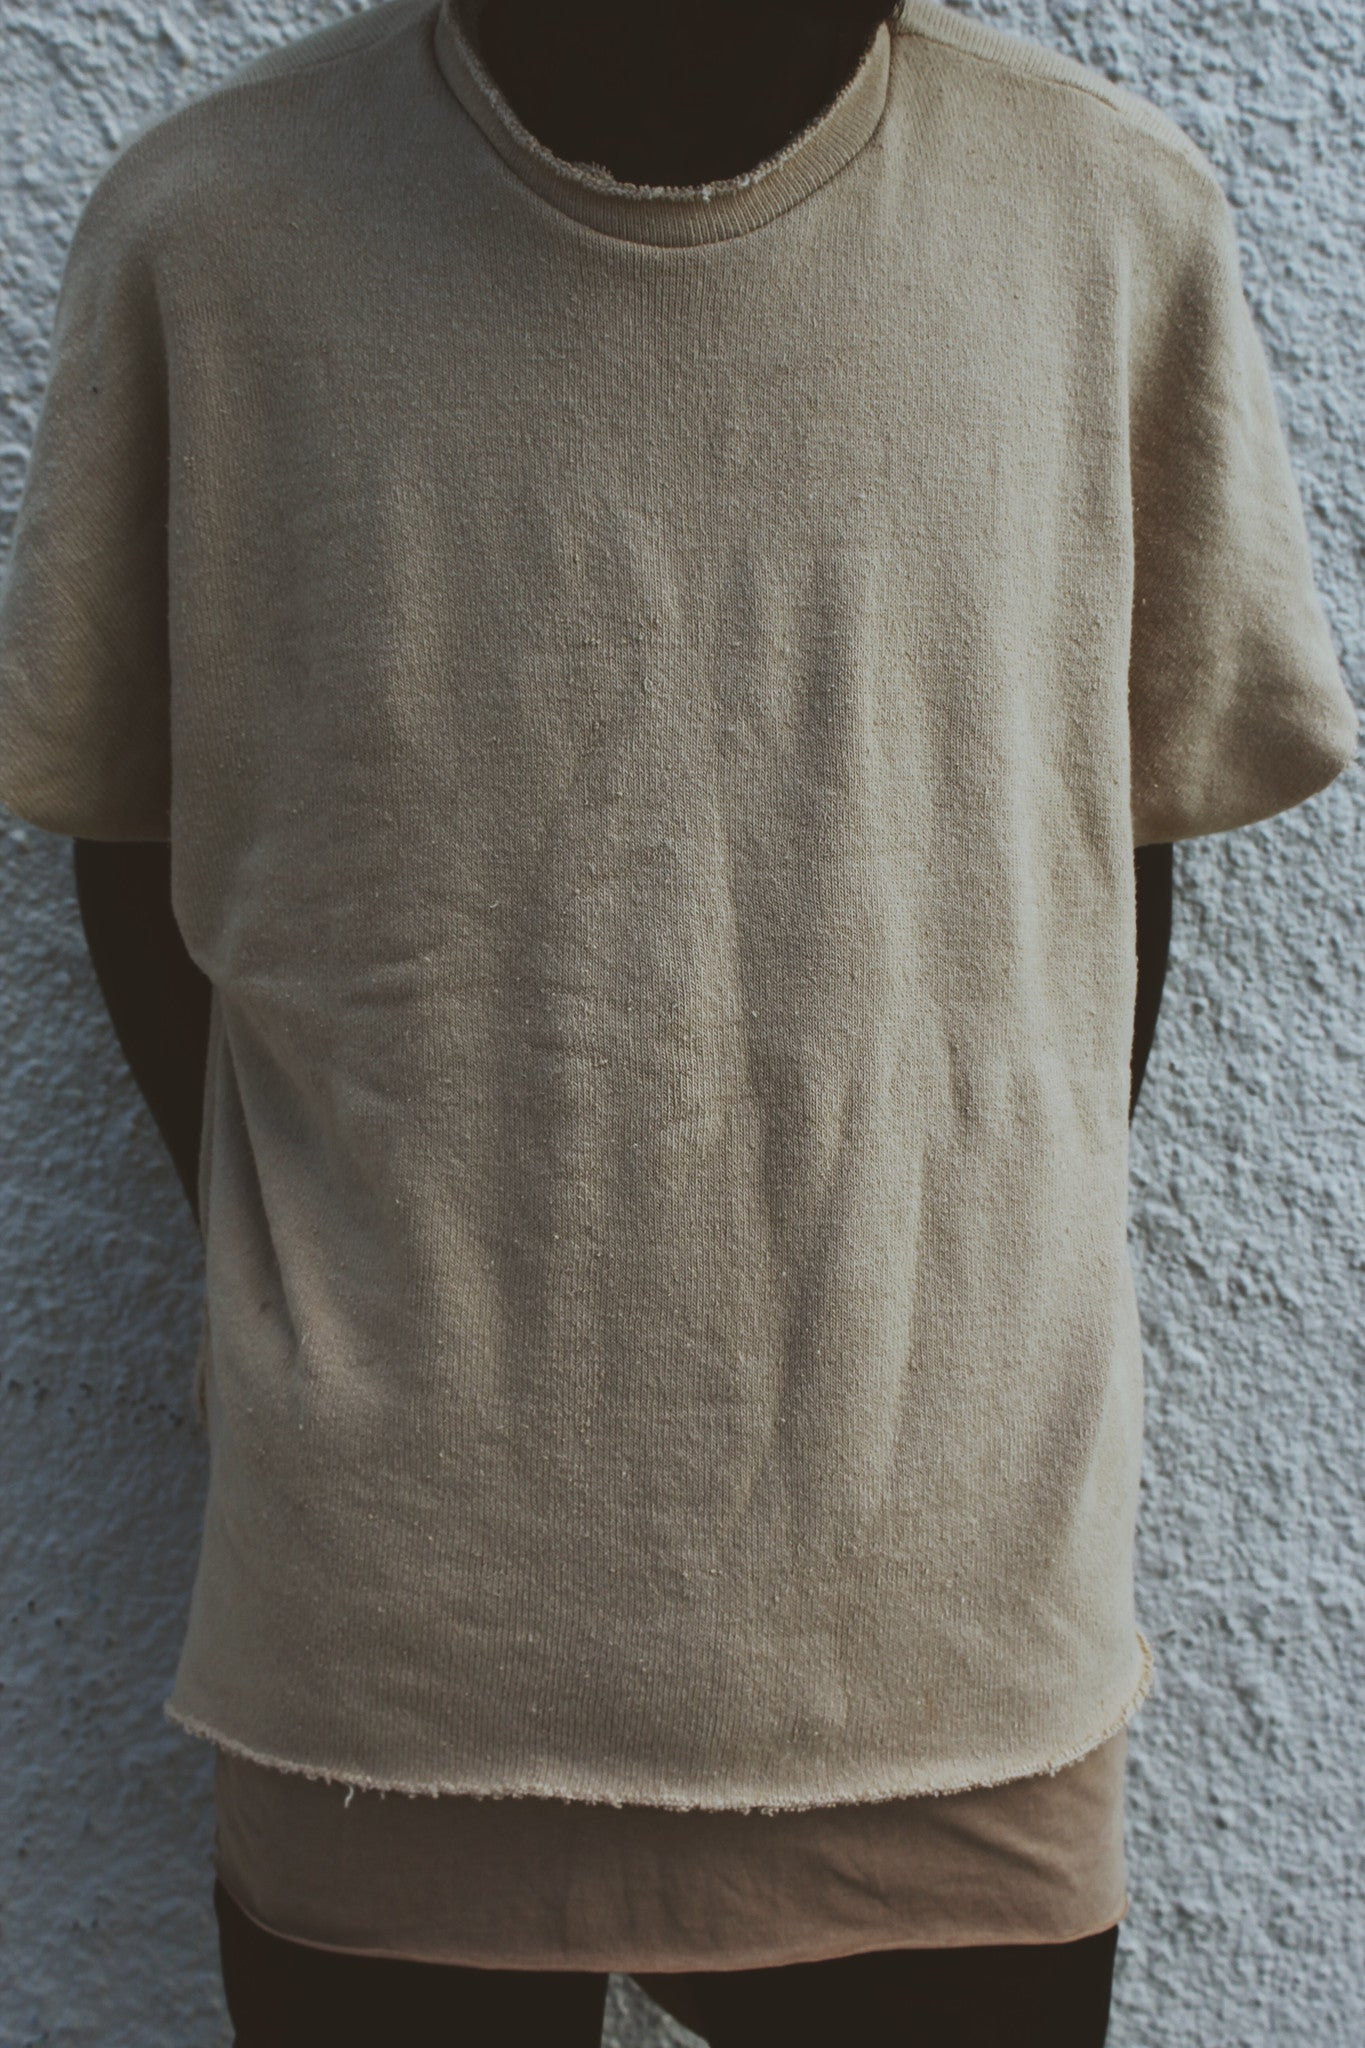 Unisex Distressed Shirt Overlay in Nude